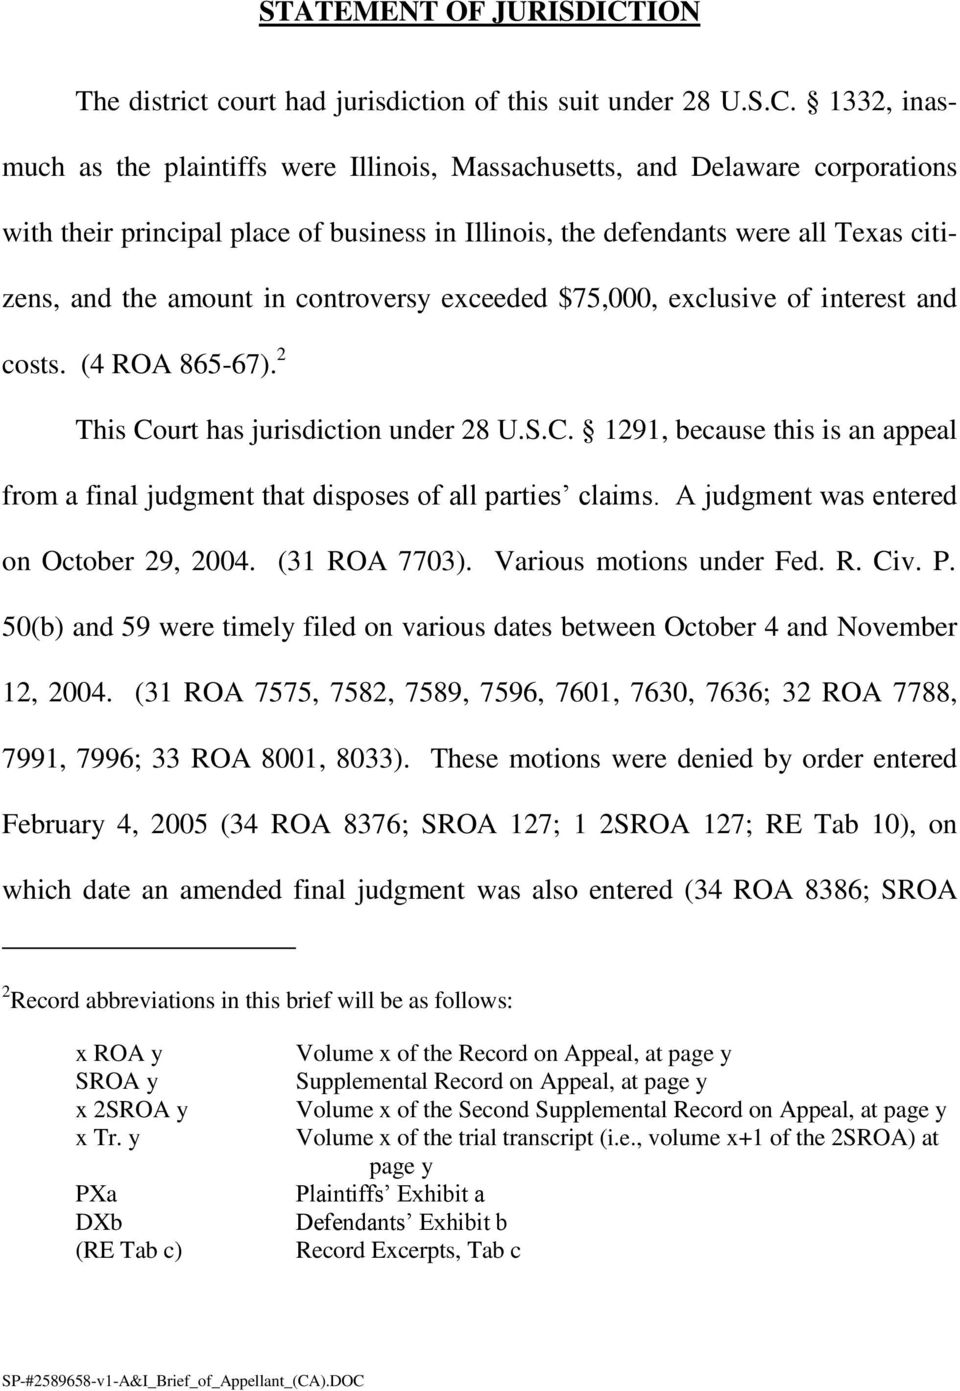 1332, inasmuch as the plaintiffs were Illinois, Massachusetts, and Delaware corporations with their principal place of business in Illinois, the defendants were all Texas citizens, and the amount in